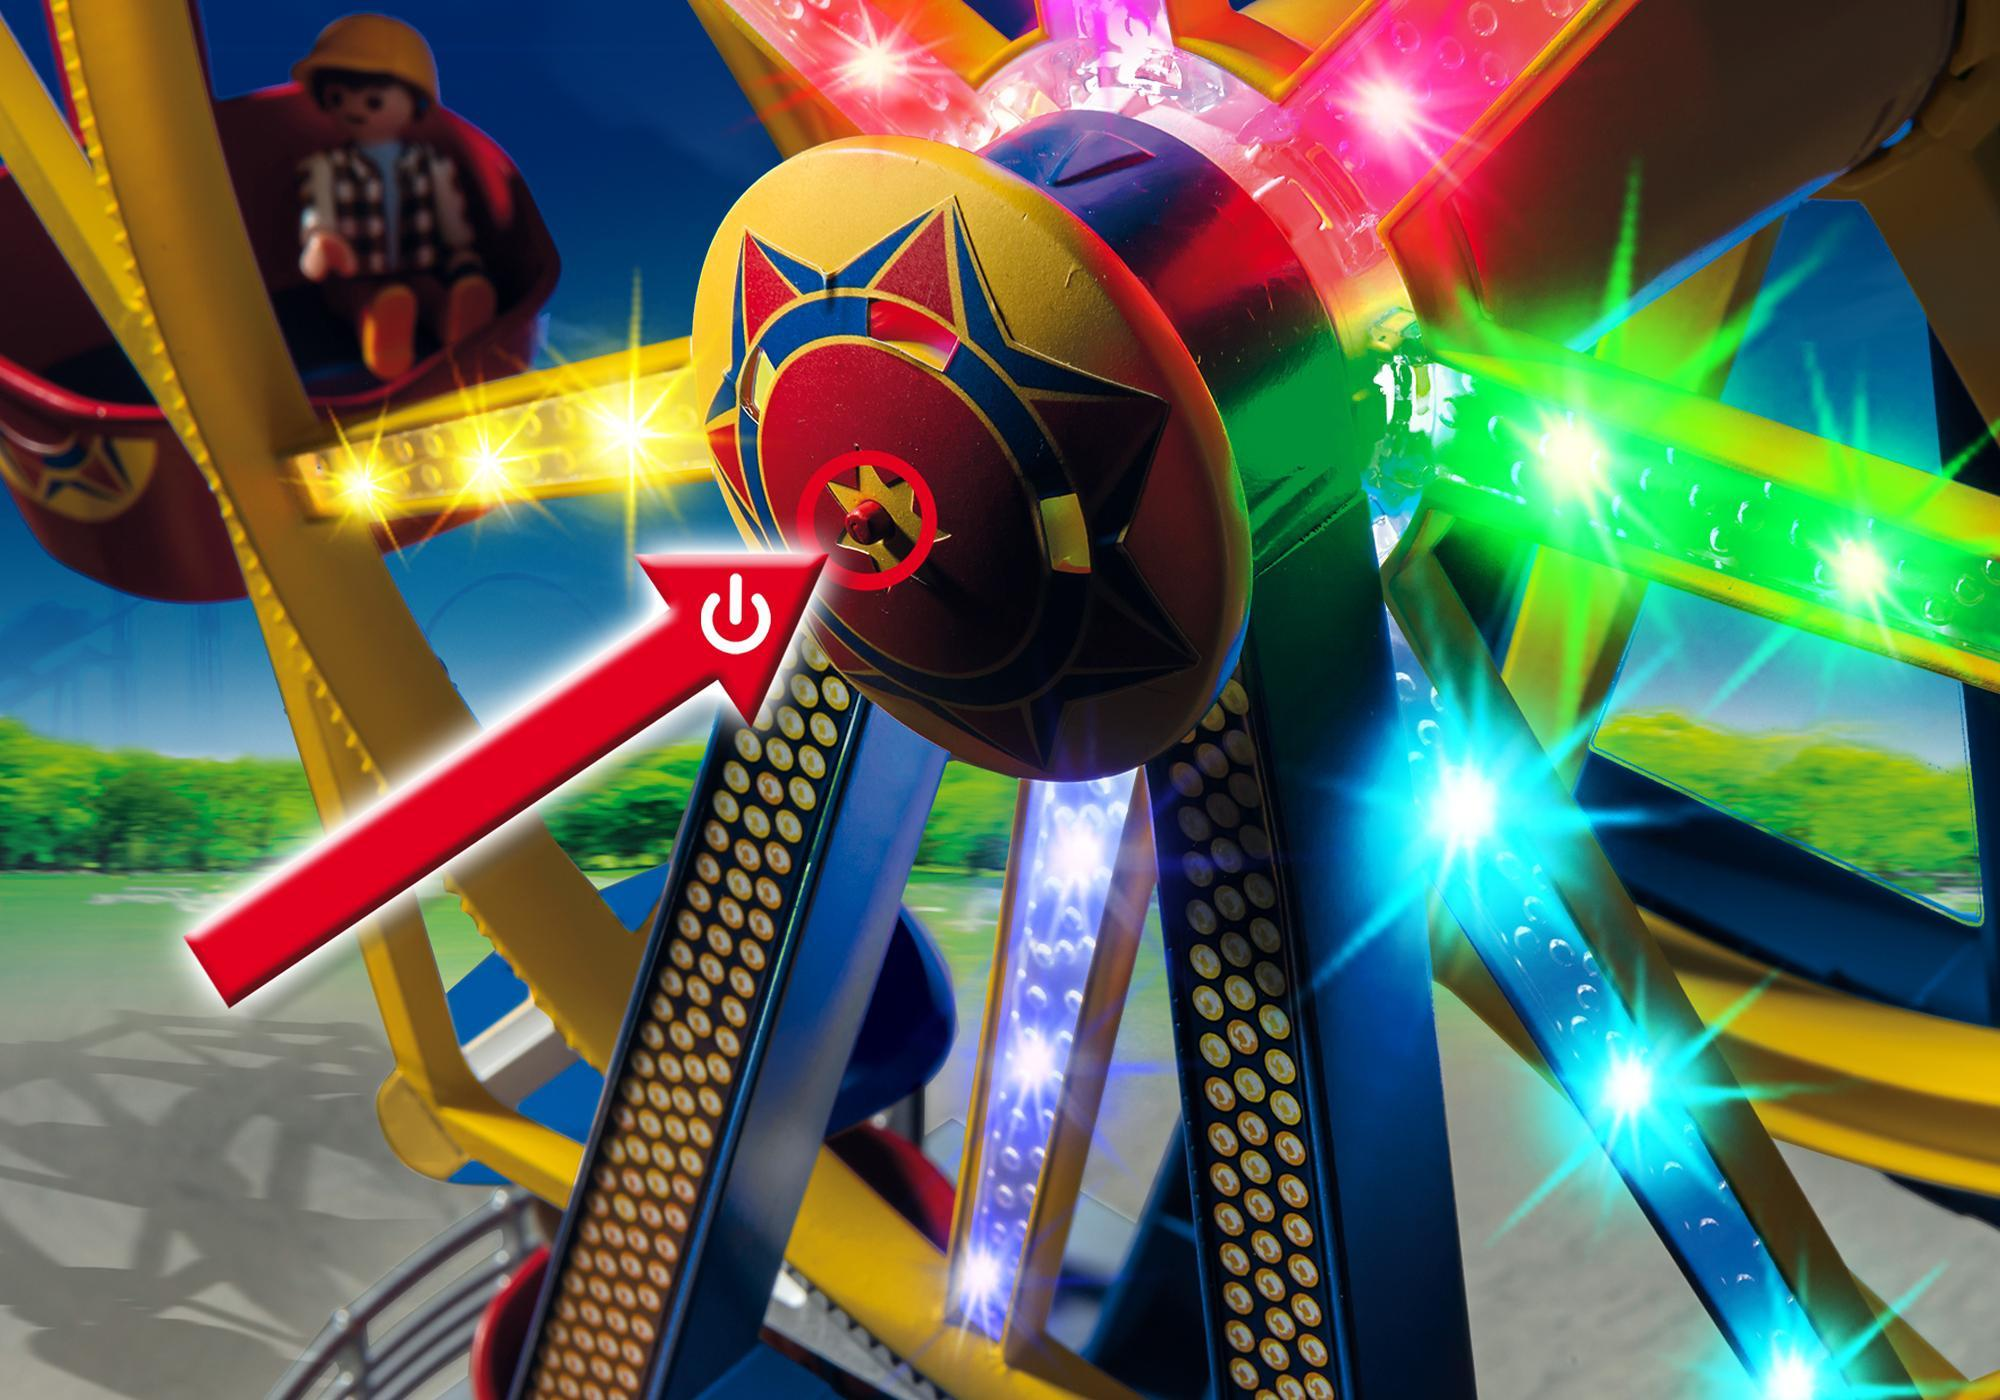 http://media.playmobil.com/i/playmobil/5552_product_extra1/Ferris Wheel with Lights